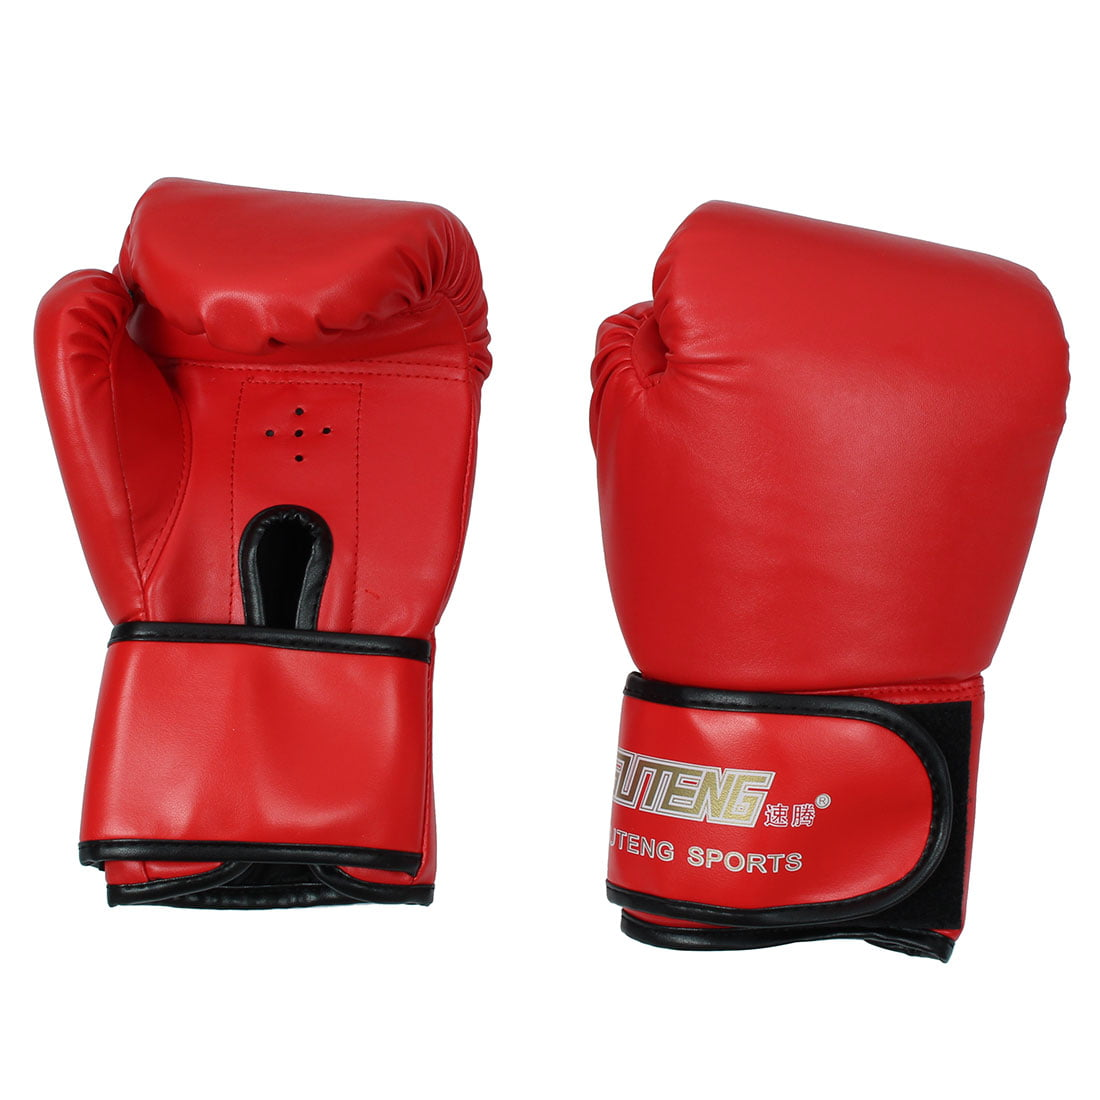 SUTENG Authorized Adult Unisex Sports PU Sparring Punching Bag Mitts Kickboxing Training Boxing Gloves Pair Red by Unique-Bargains